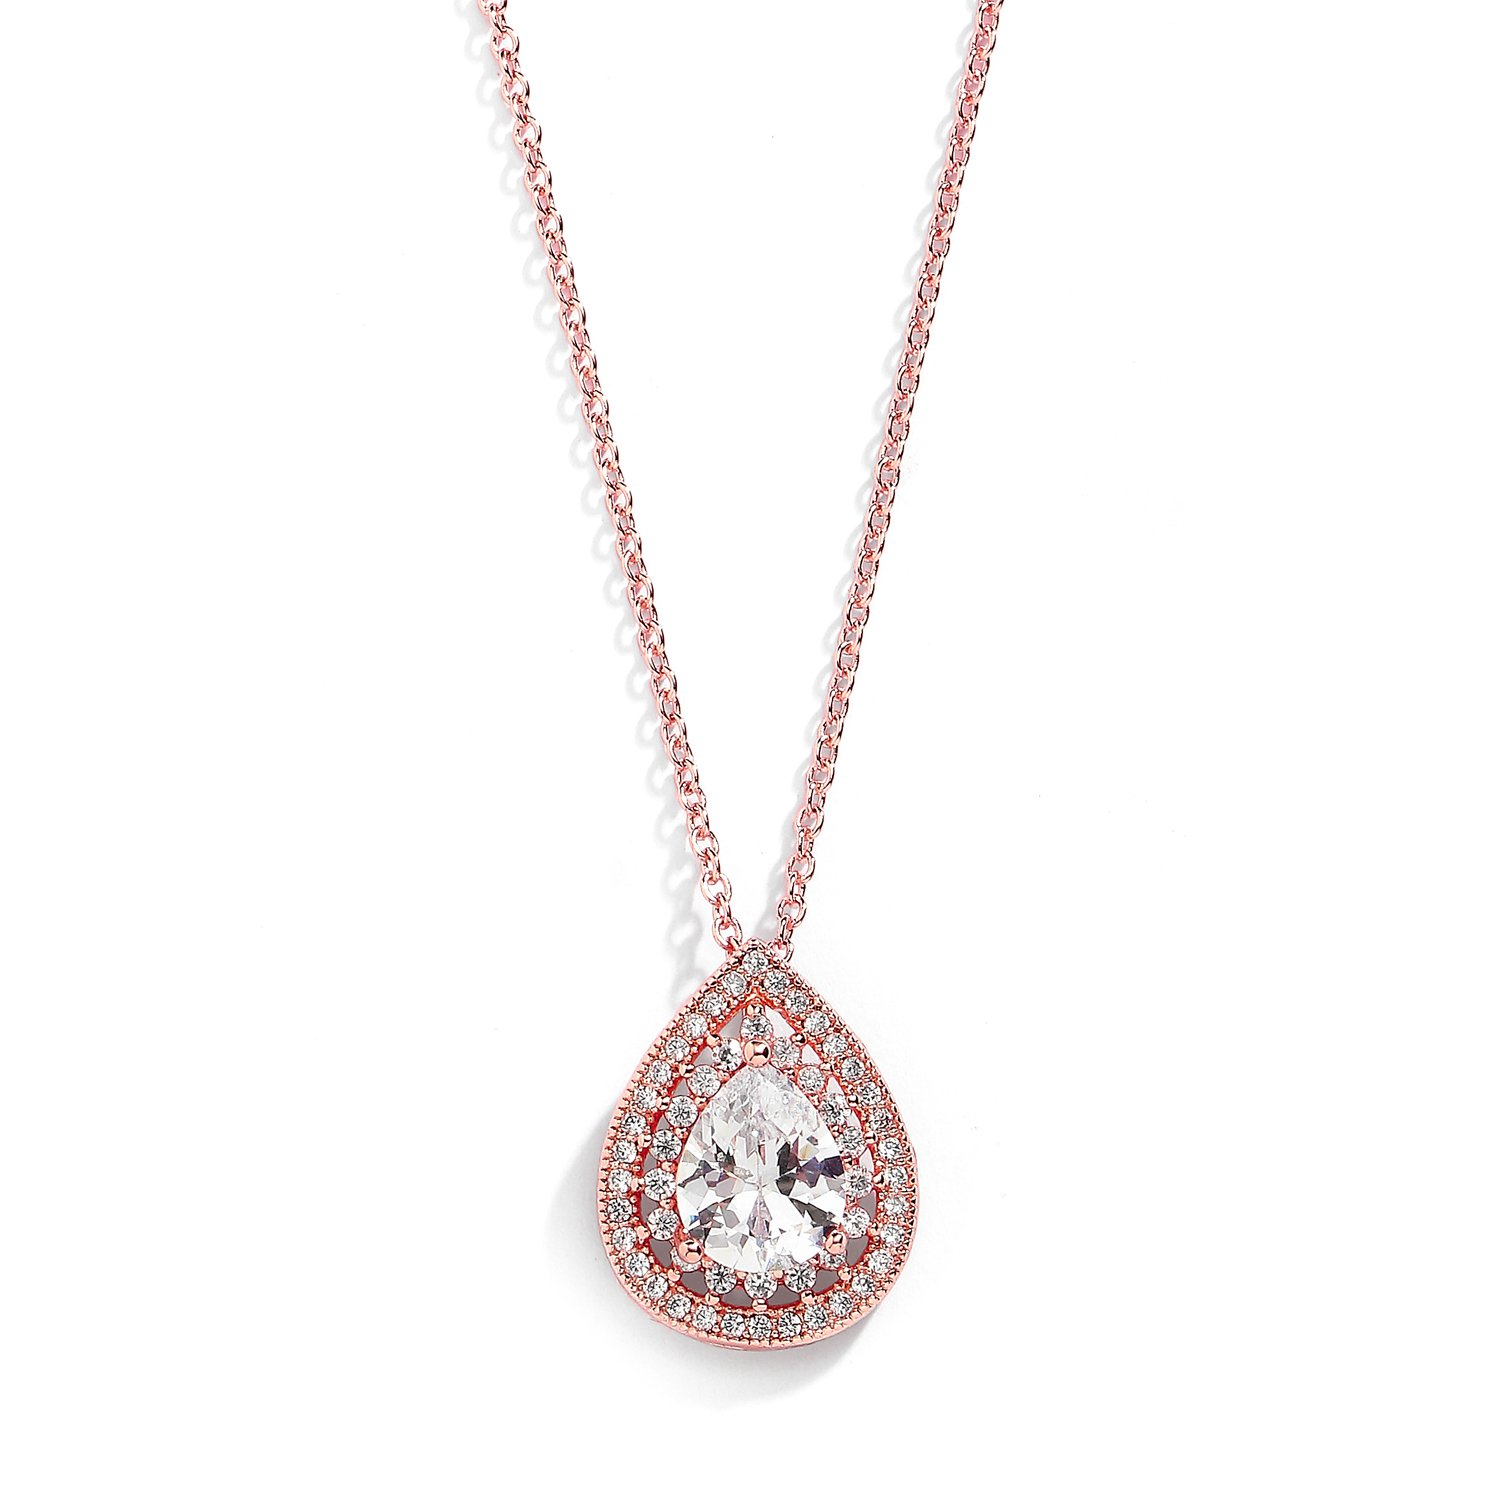 Mariell Rose Gold CZ Pave Framed Pear-Shaped Solitaire Necklace Pendant - Vintage Wedding Bridal Jewelry